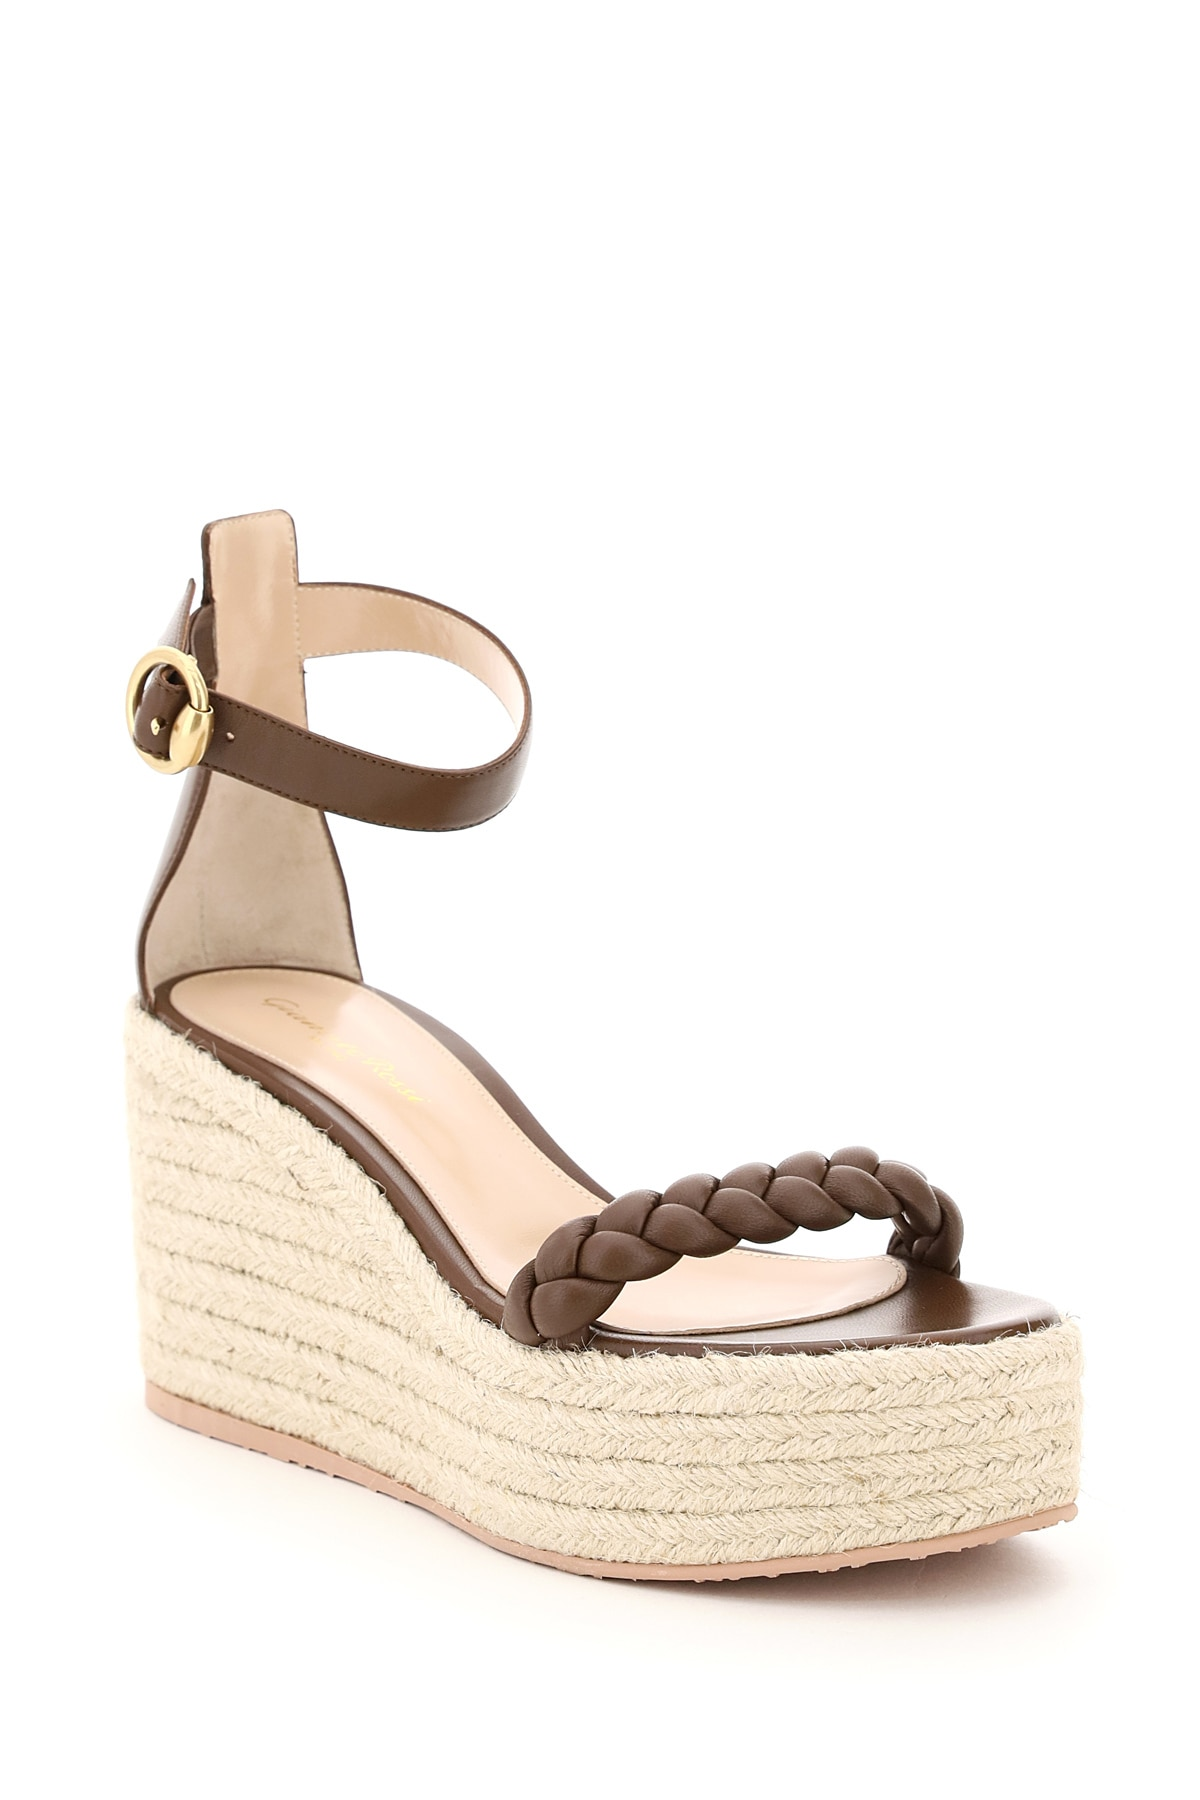 GIANVITO ROSSI Leathers LEATHER SANDALS WITH ROPE PLATFORM